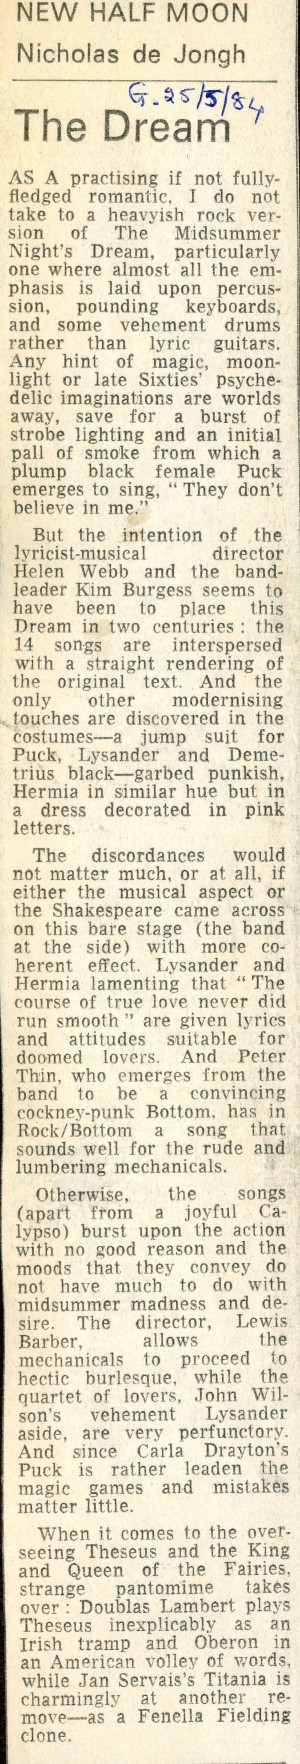 Dreamer Review, Nicholas de Jongh - The Guardian - 25th May 1984